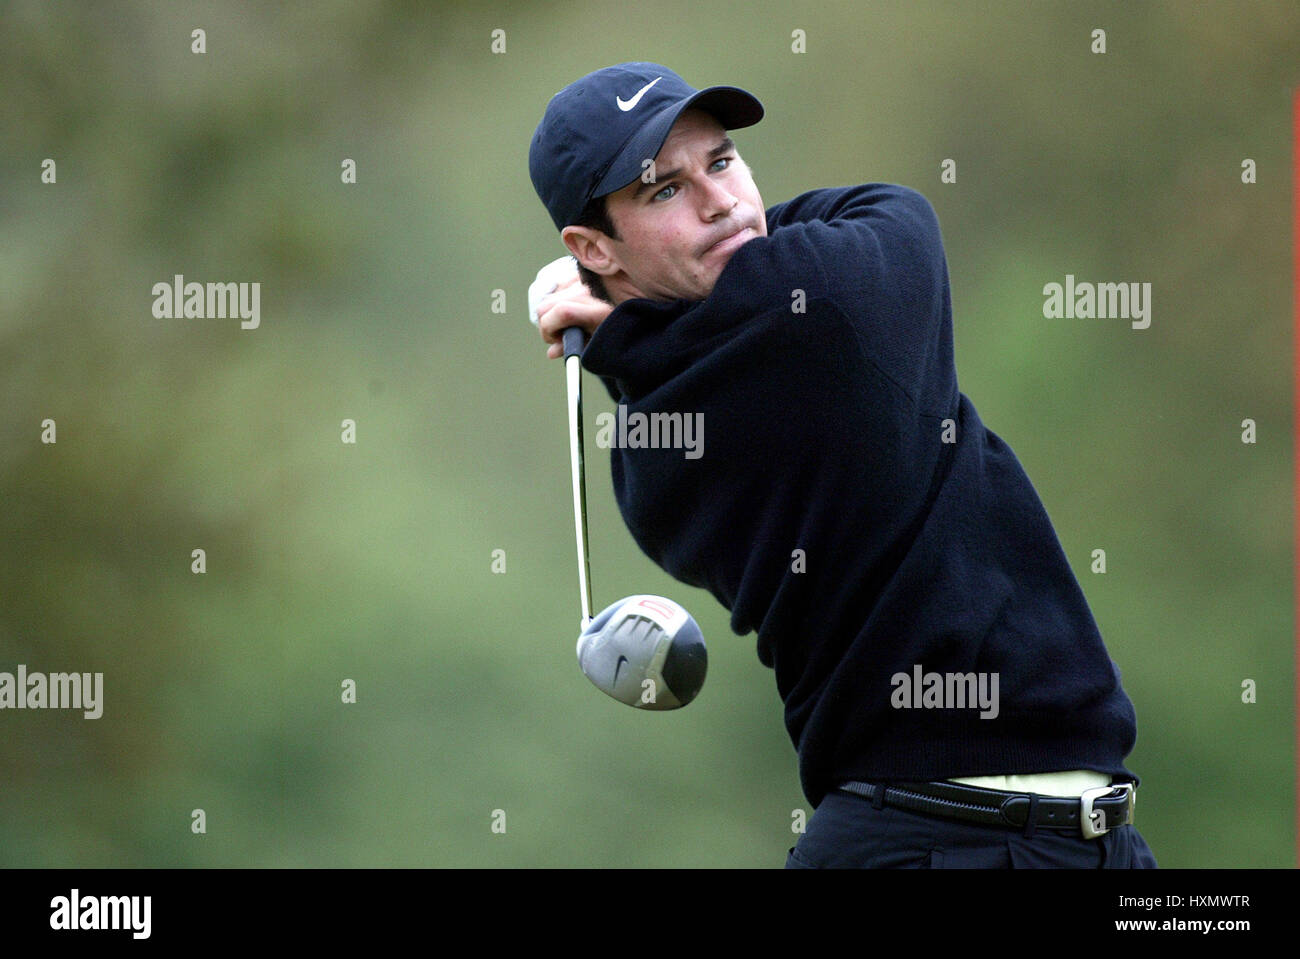 TREVOR IMMELMAN SOUTH AFRICA FOREST OF ARDEN 09 May 2004 - Stock Image